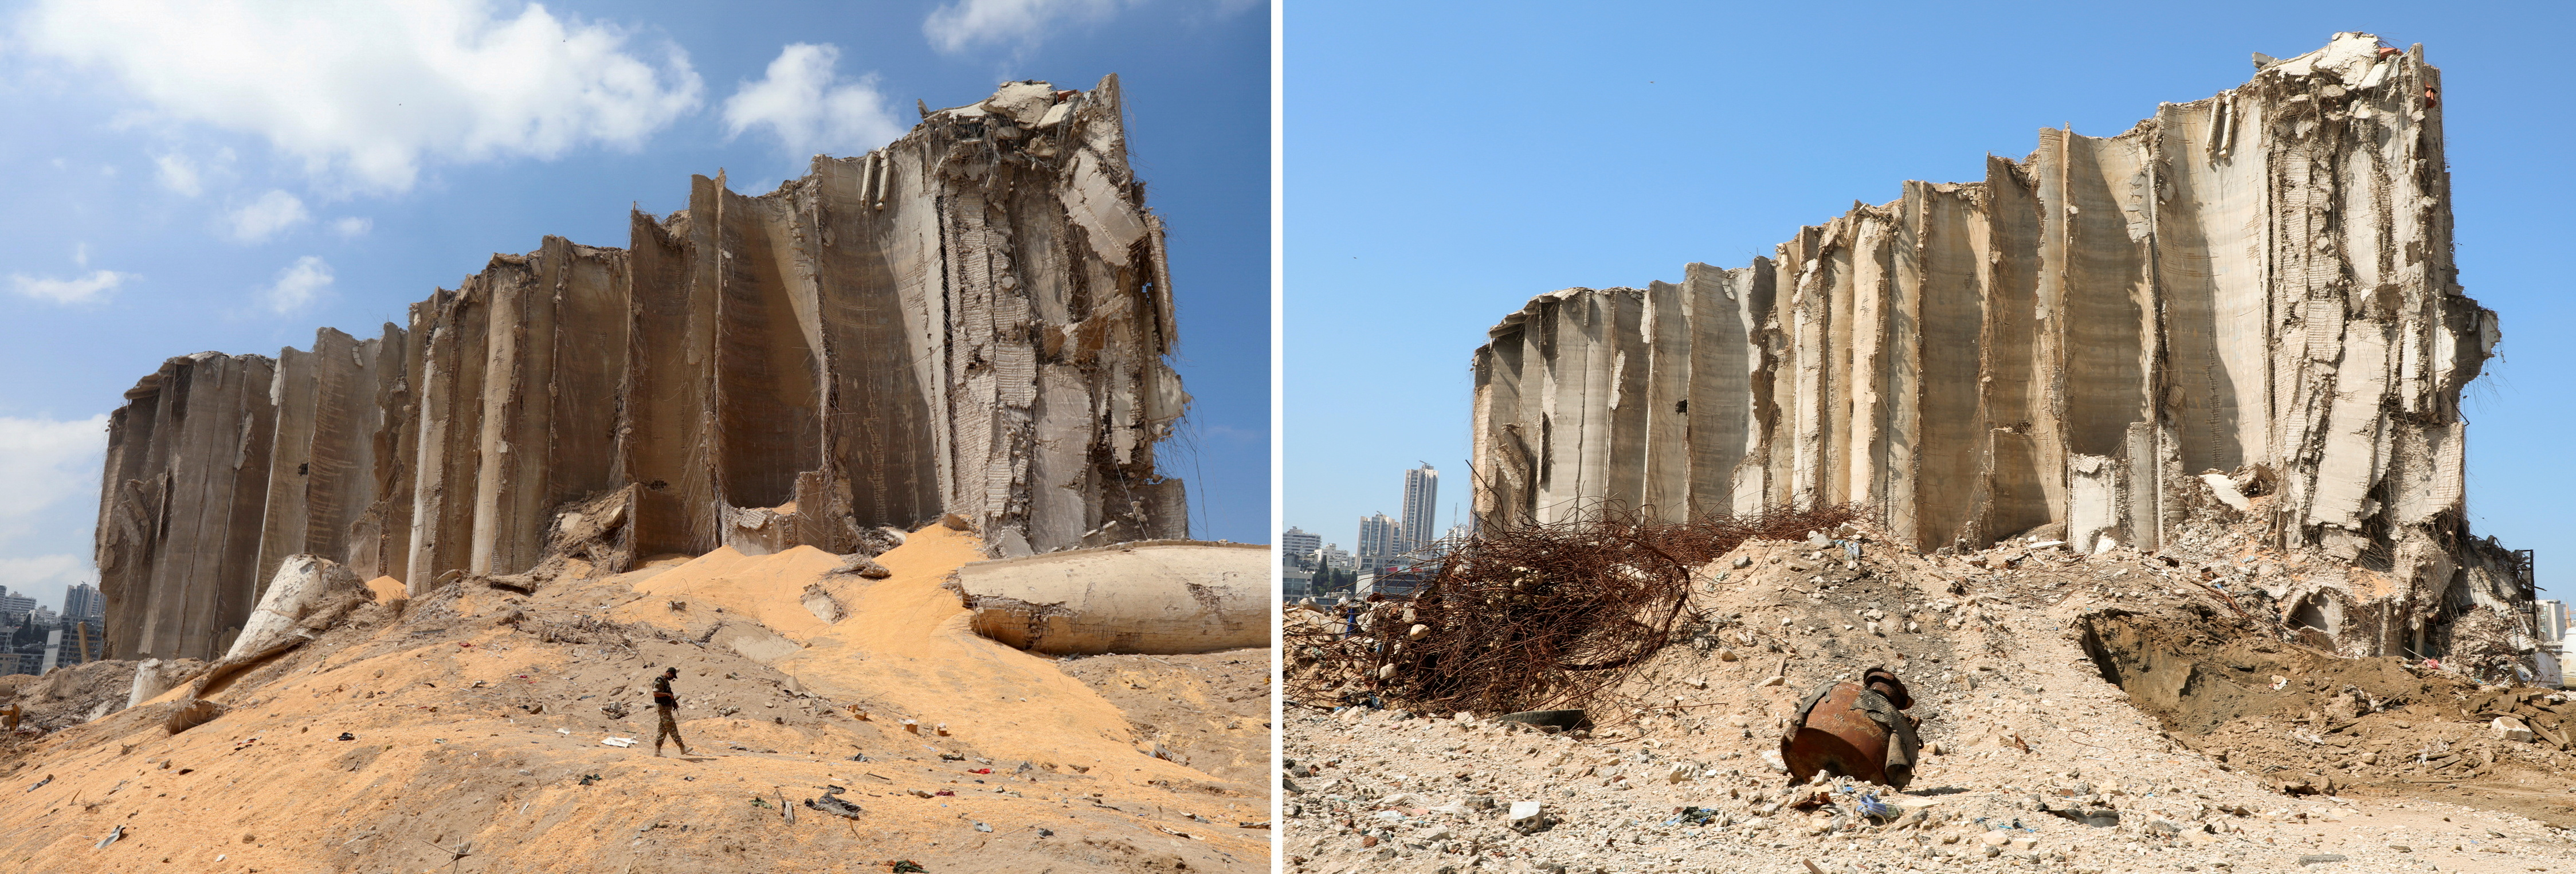 A combination picture shows the grain silo that was damaged during Aug. 4 explosion in Beirut's port, shot on August 7, 2020 and the same area after almost a year since the blast, Lebanon on July 13, 2021. REUTERS/Mohamed Azakir/File Photo